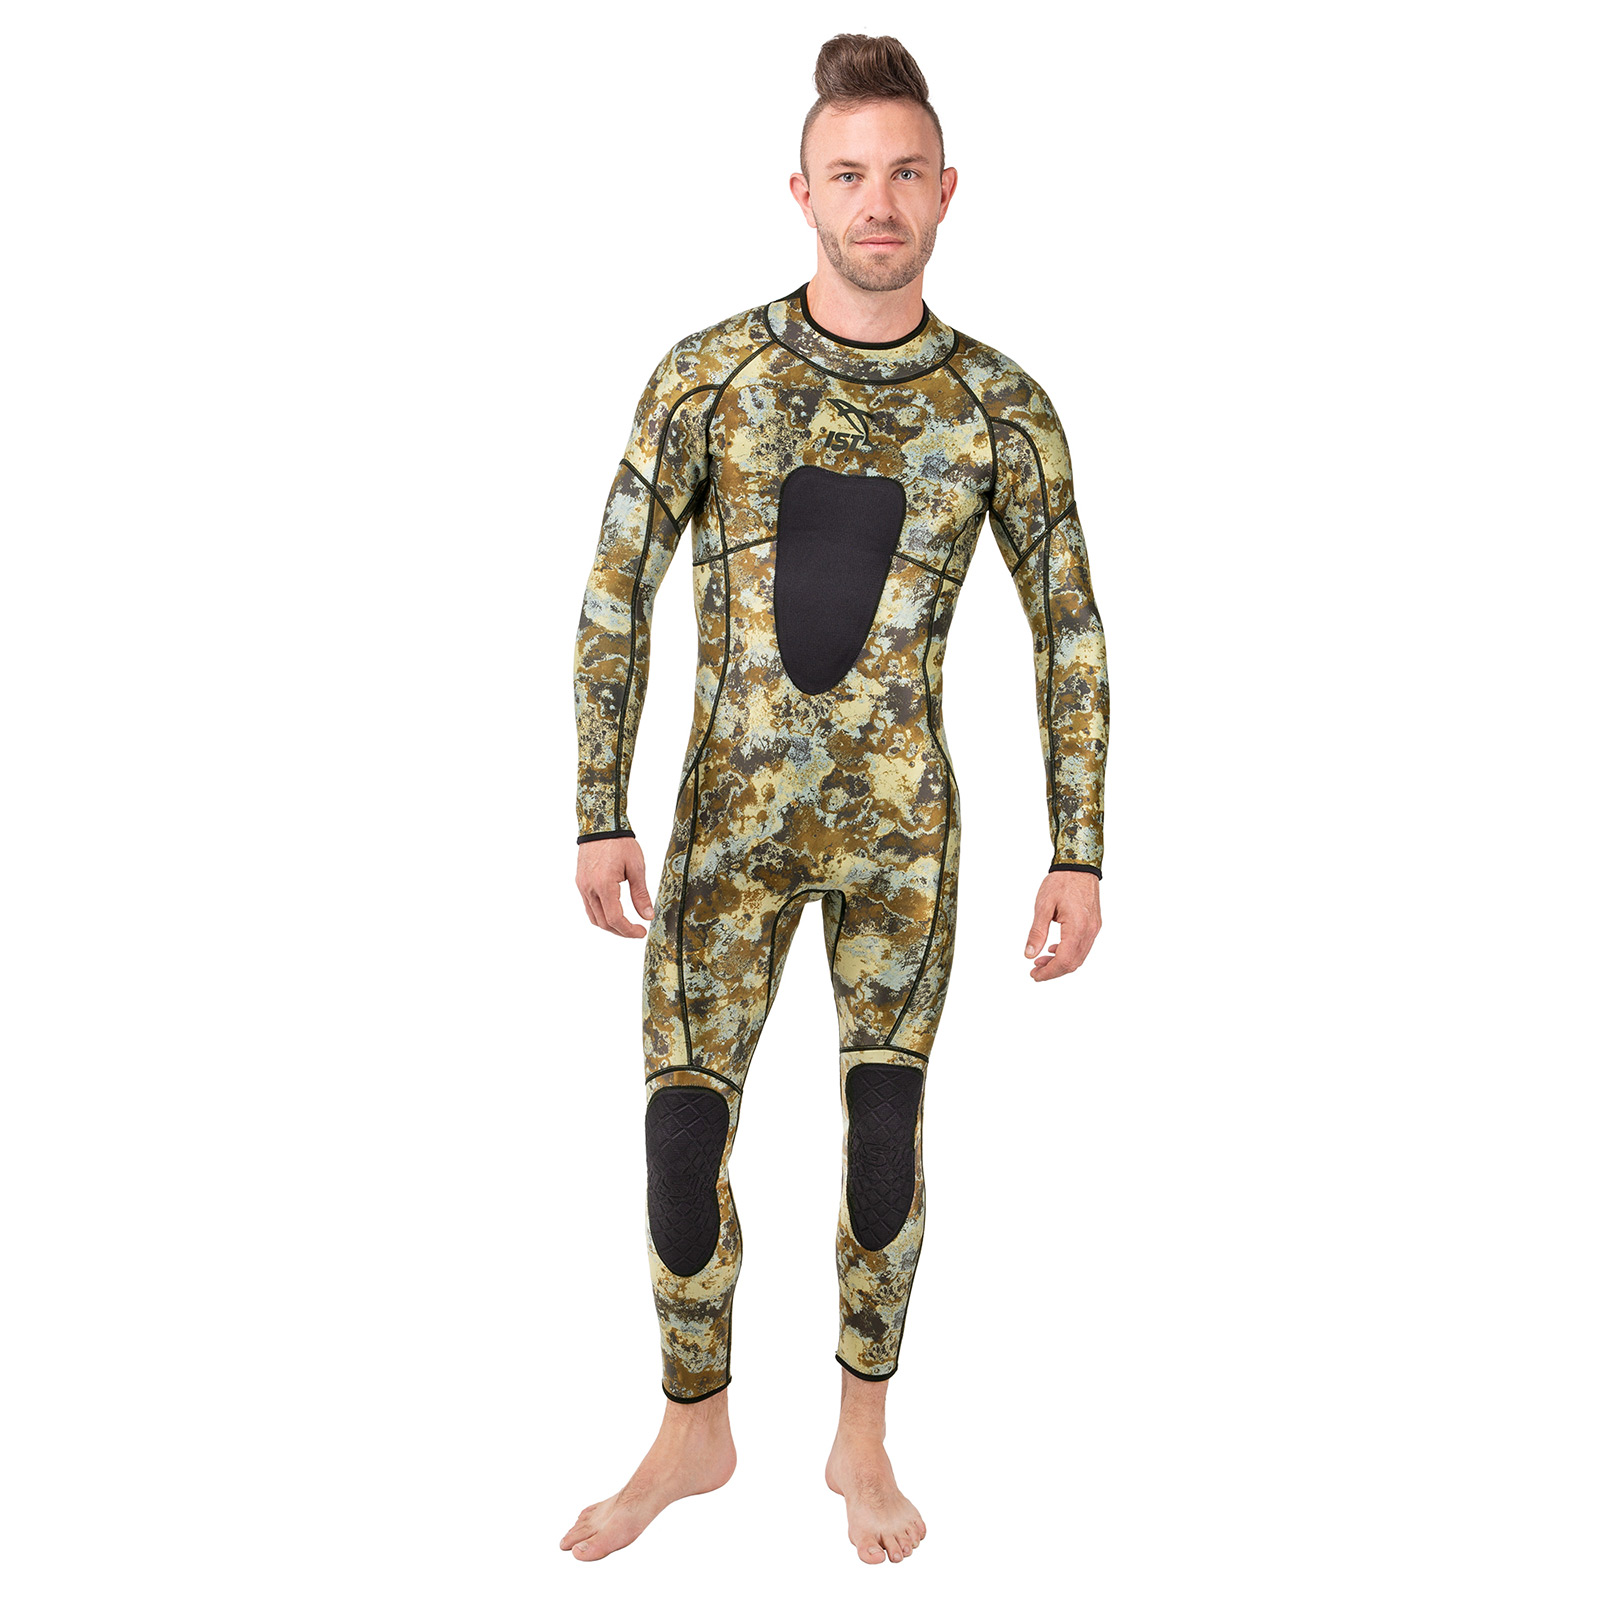 3mm Camo Jumpsuit for hunting in warm water